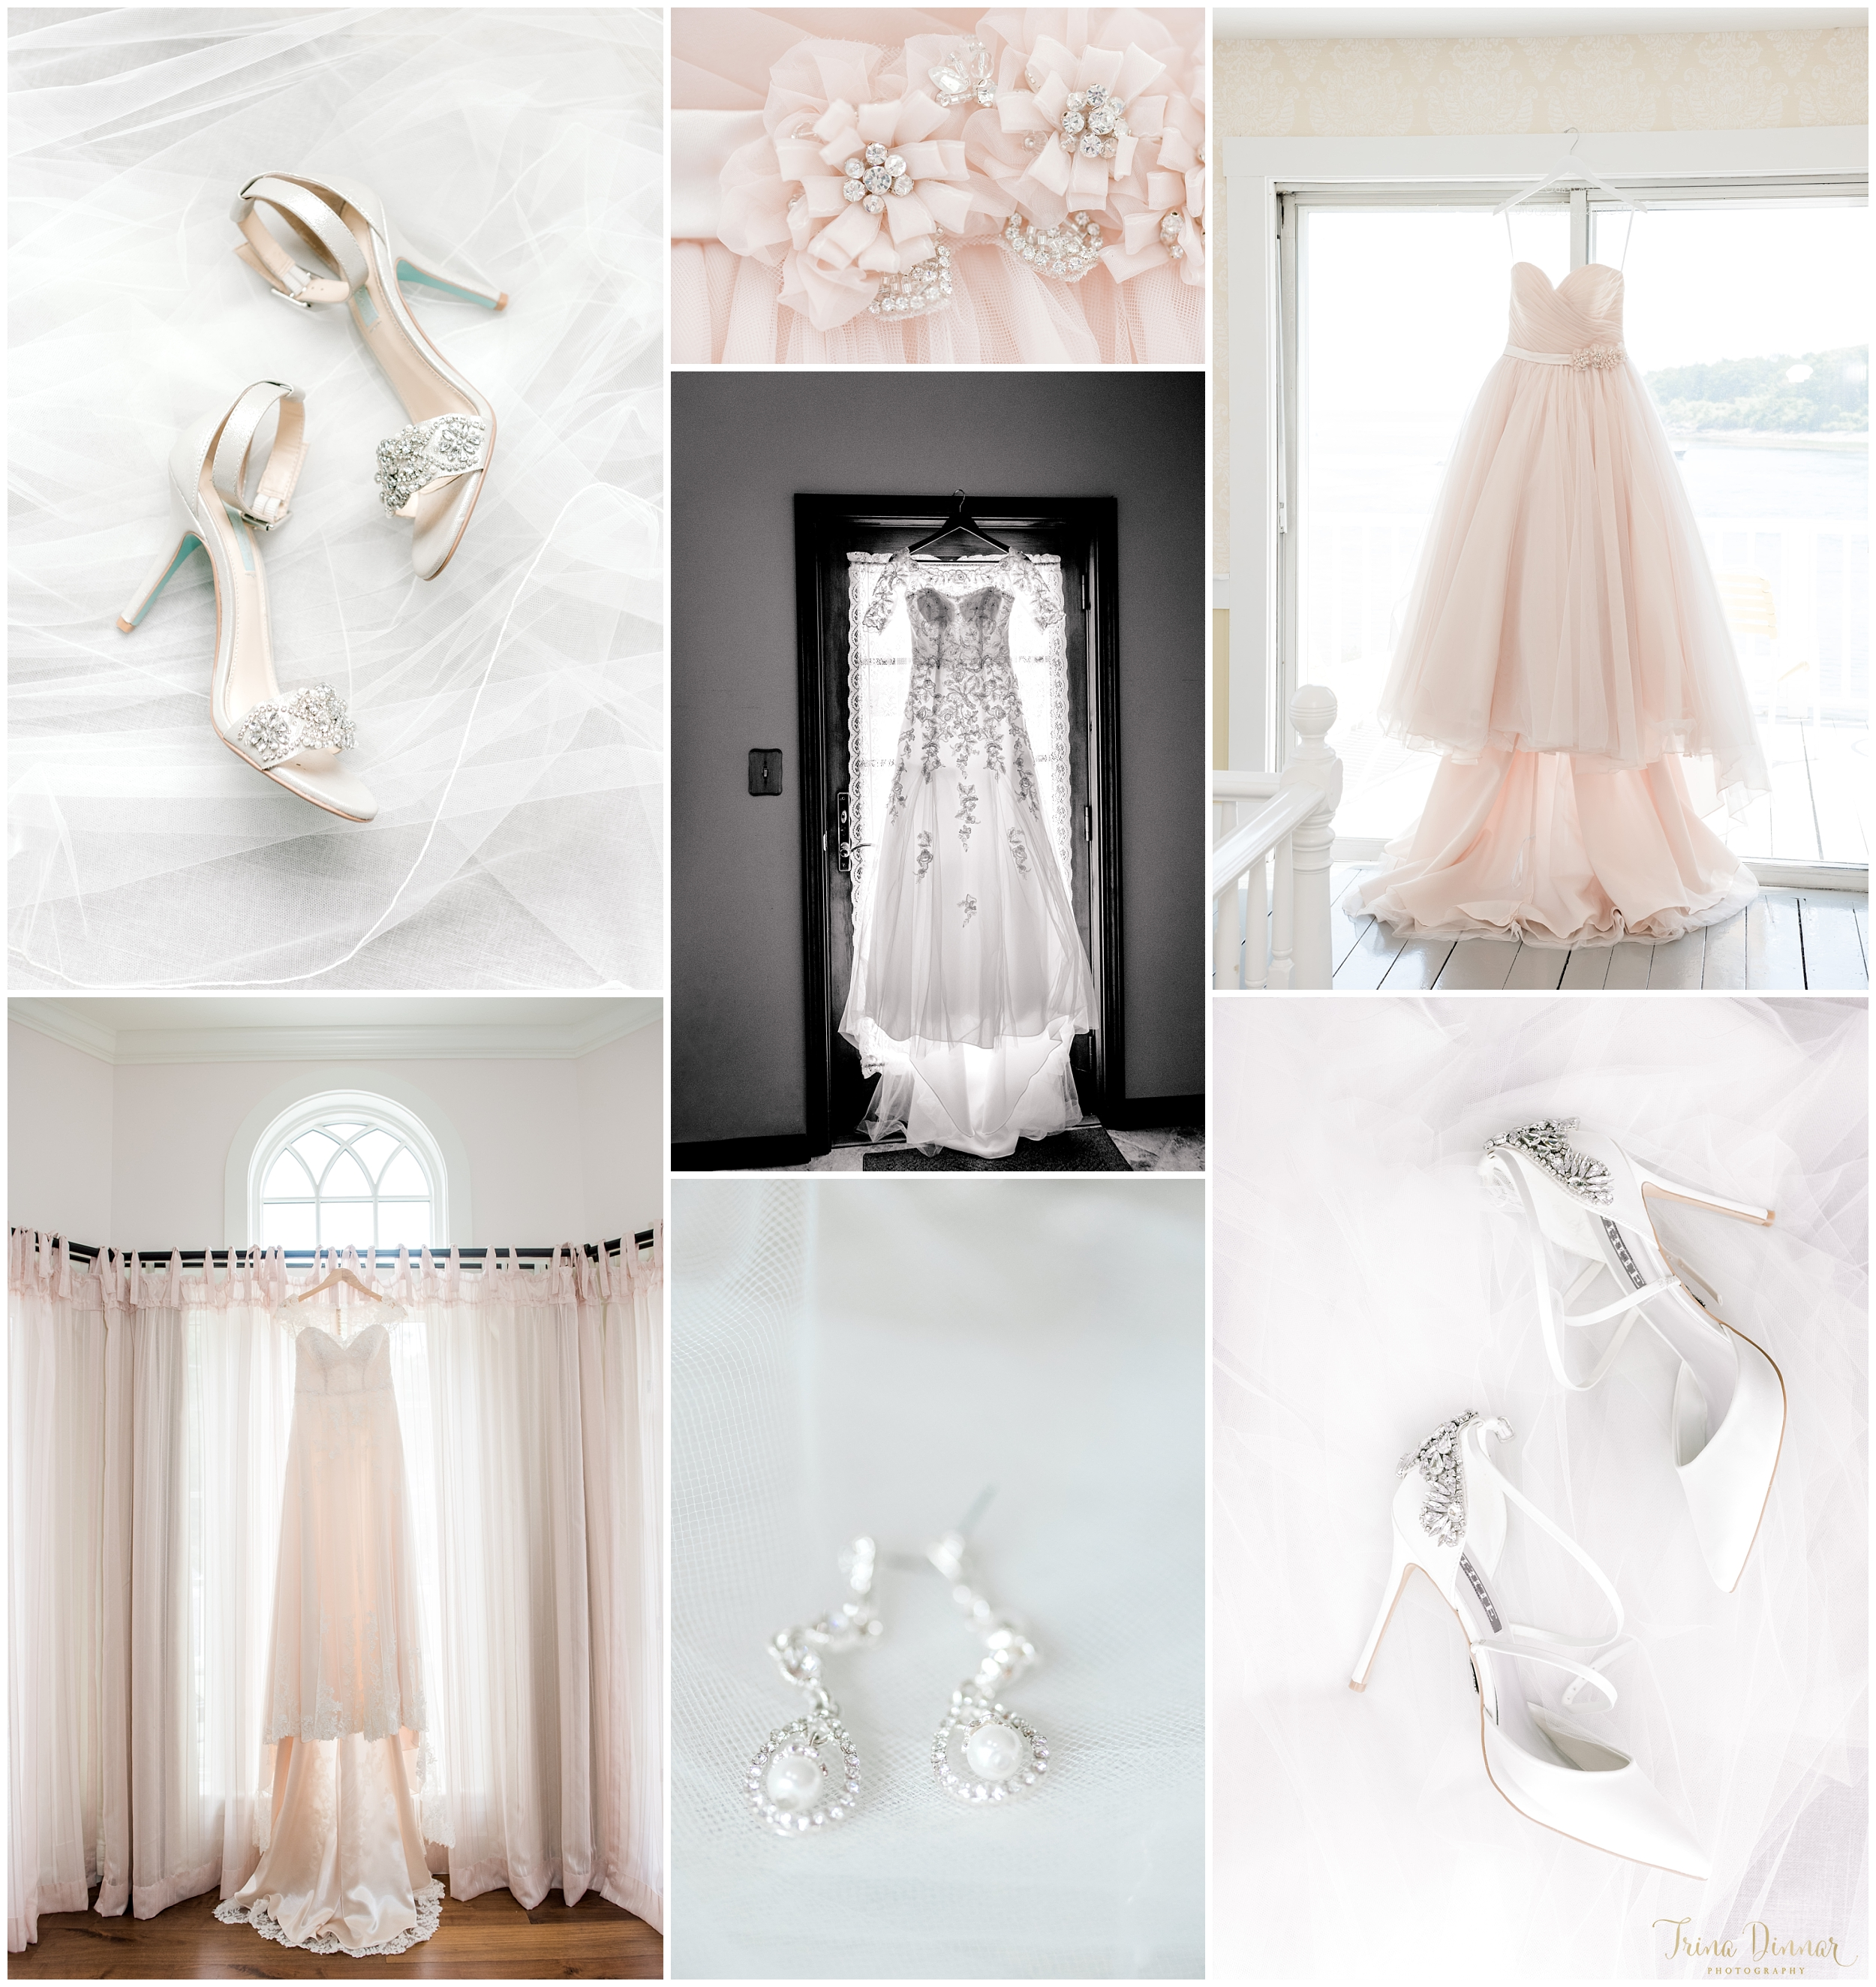 Here are a few of my favorite images depicting Maine bridal attire that I photographed in 2018.